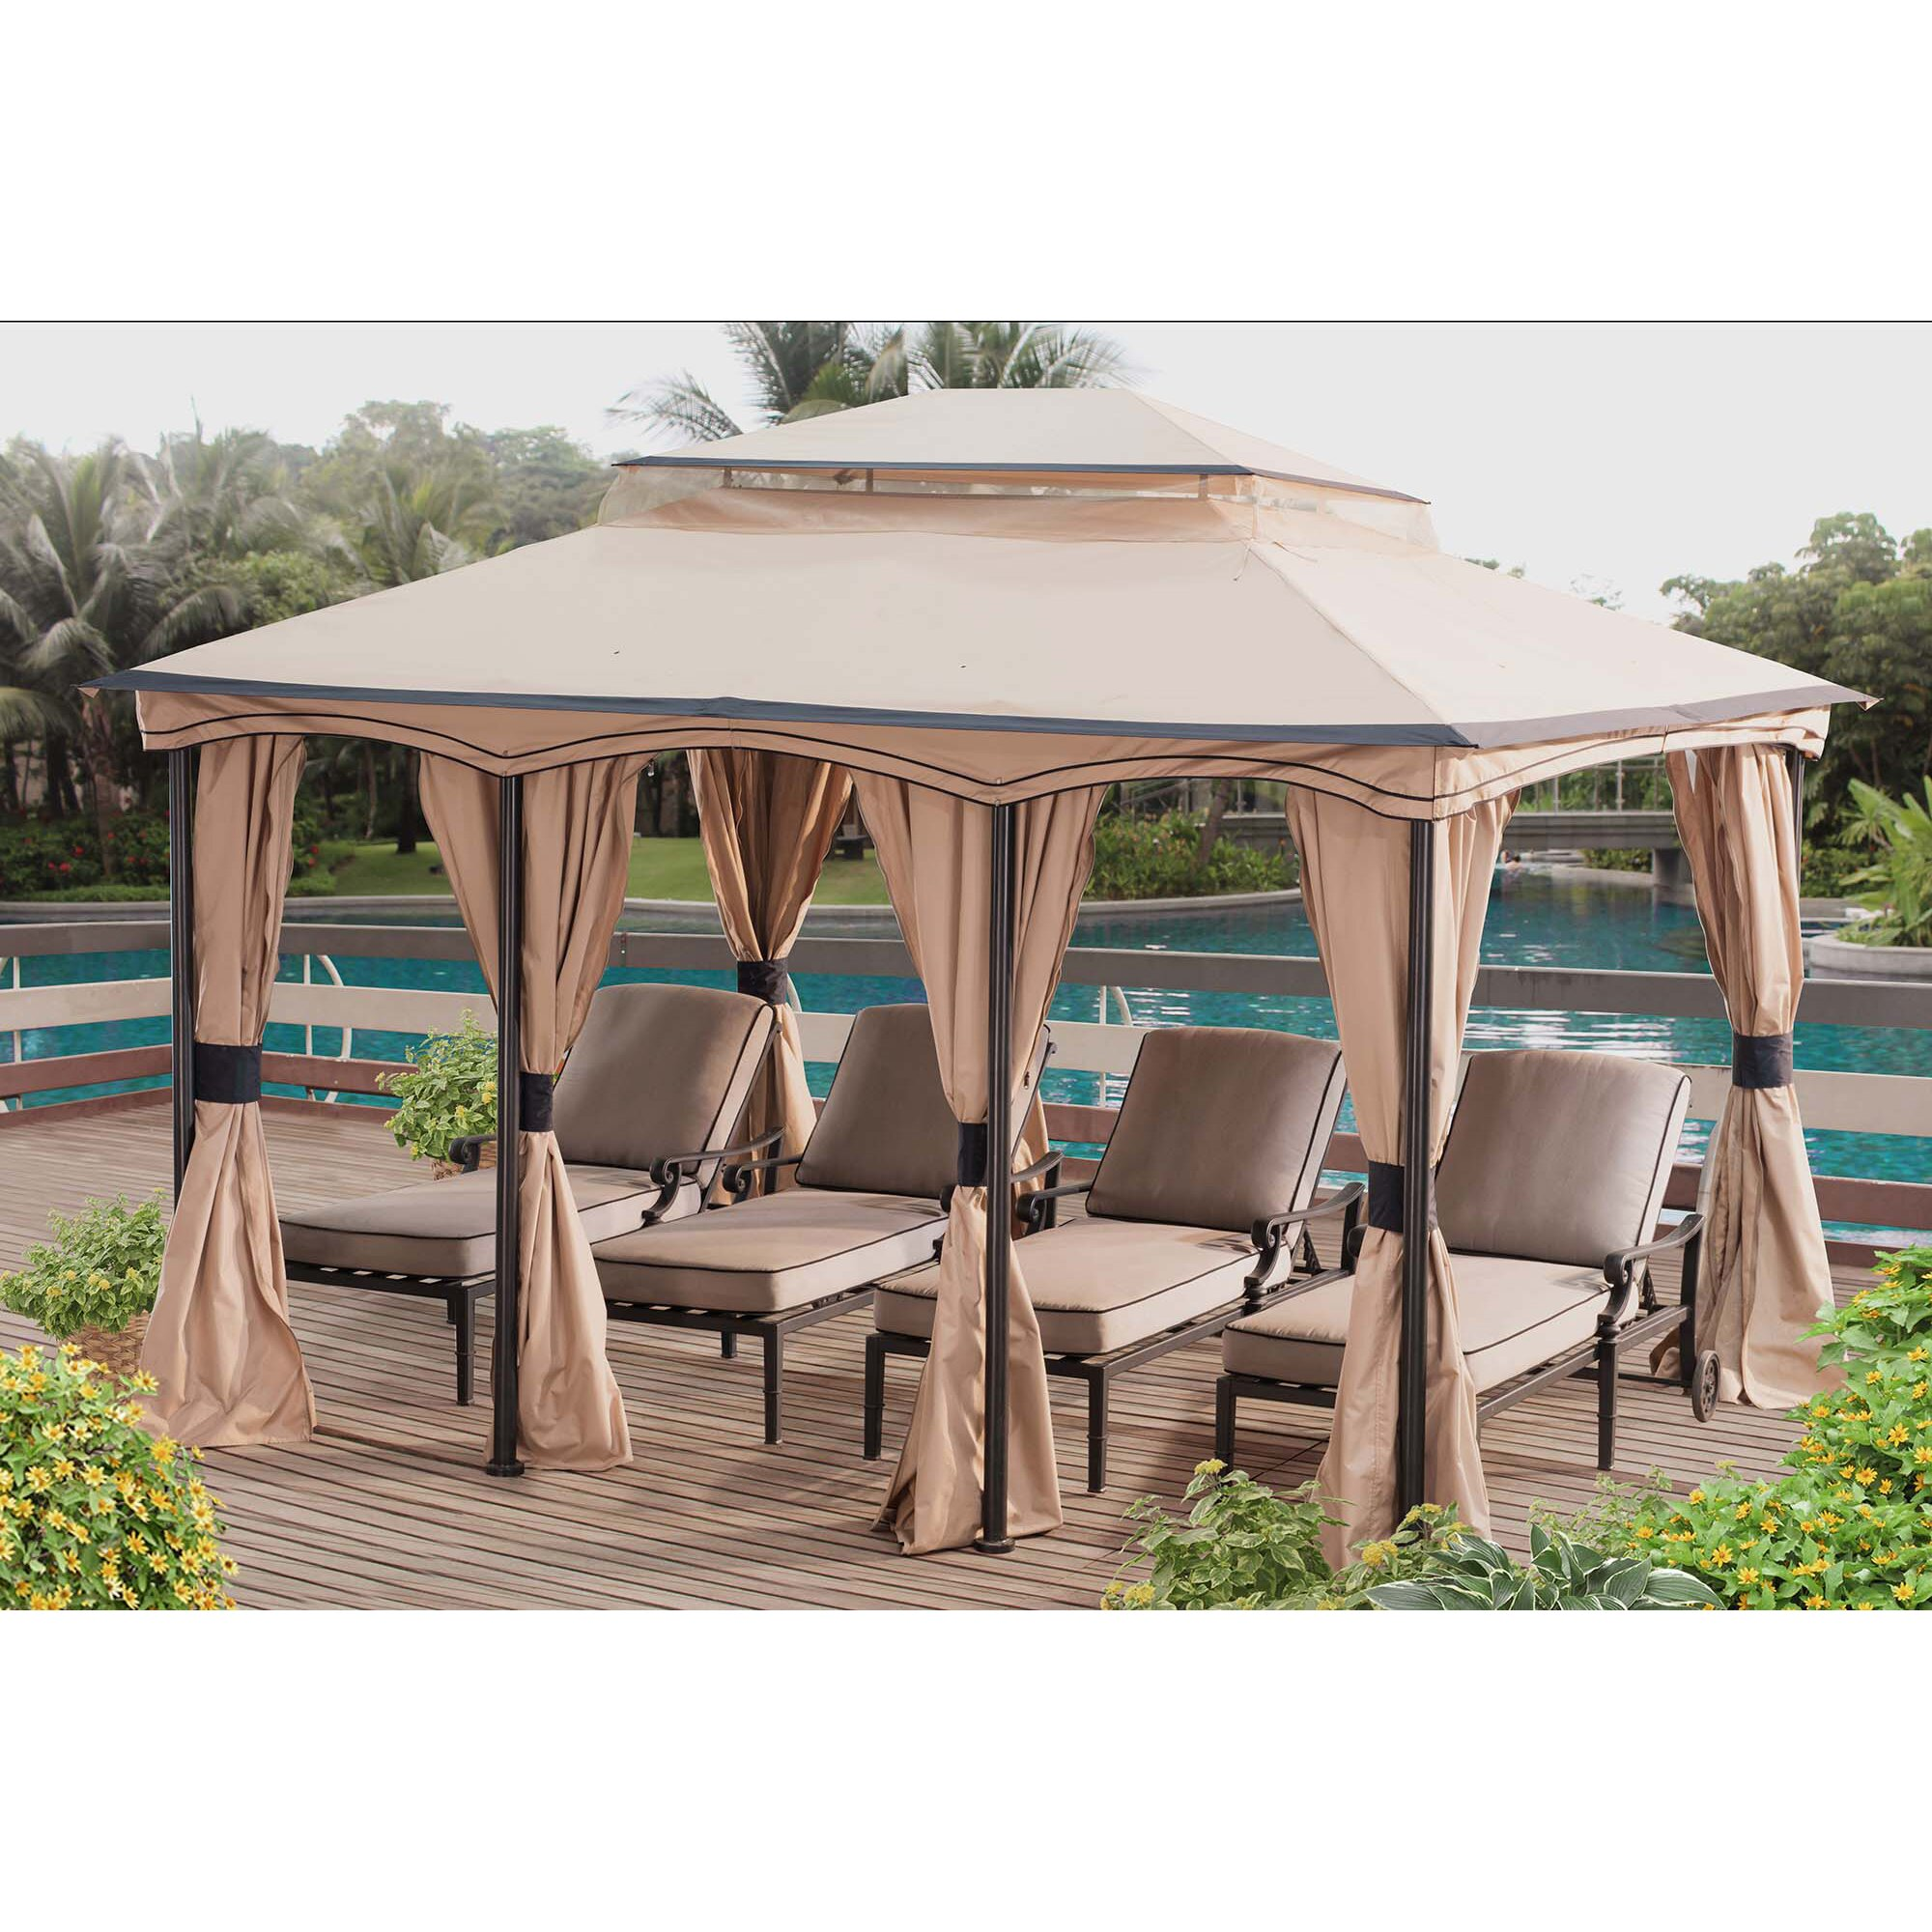 Backyard Cabanas Gazebos : Sunjoy Cabana 12 Ft W x 10 Ft D Gazebo  Wayfair